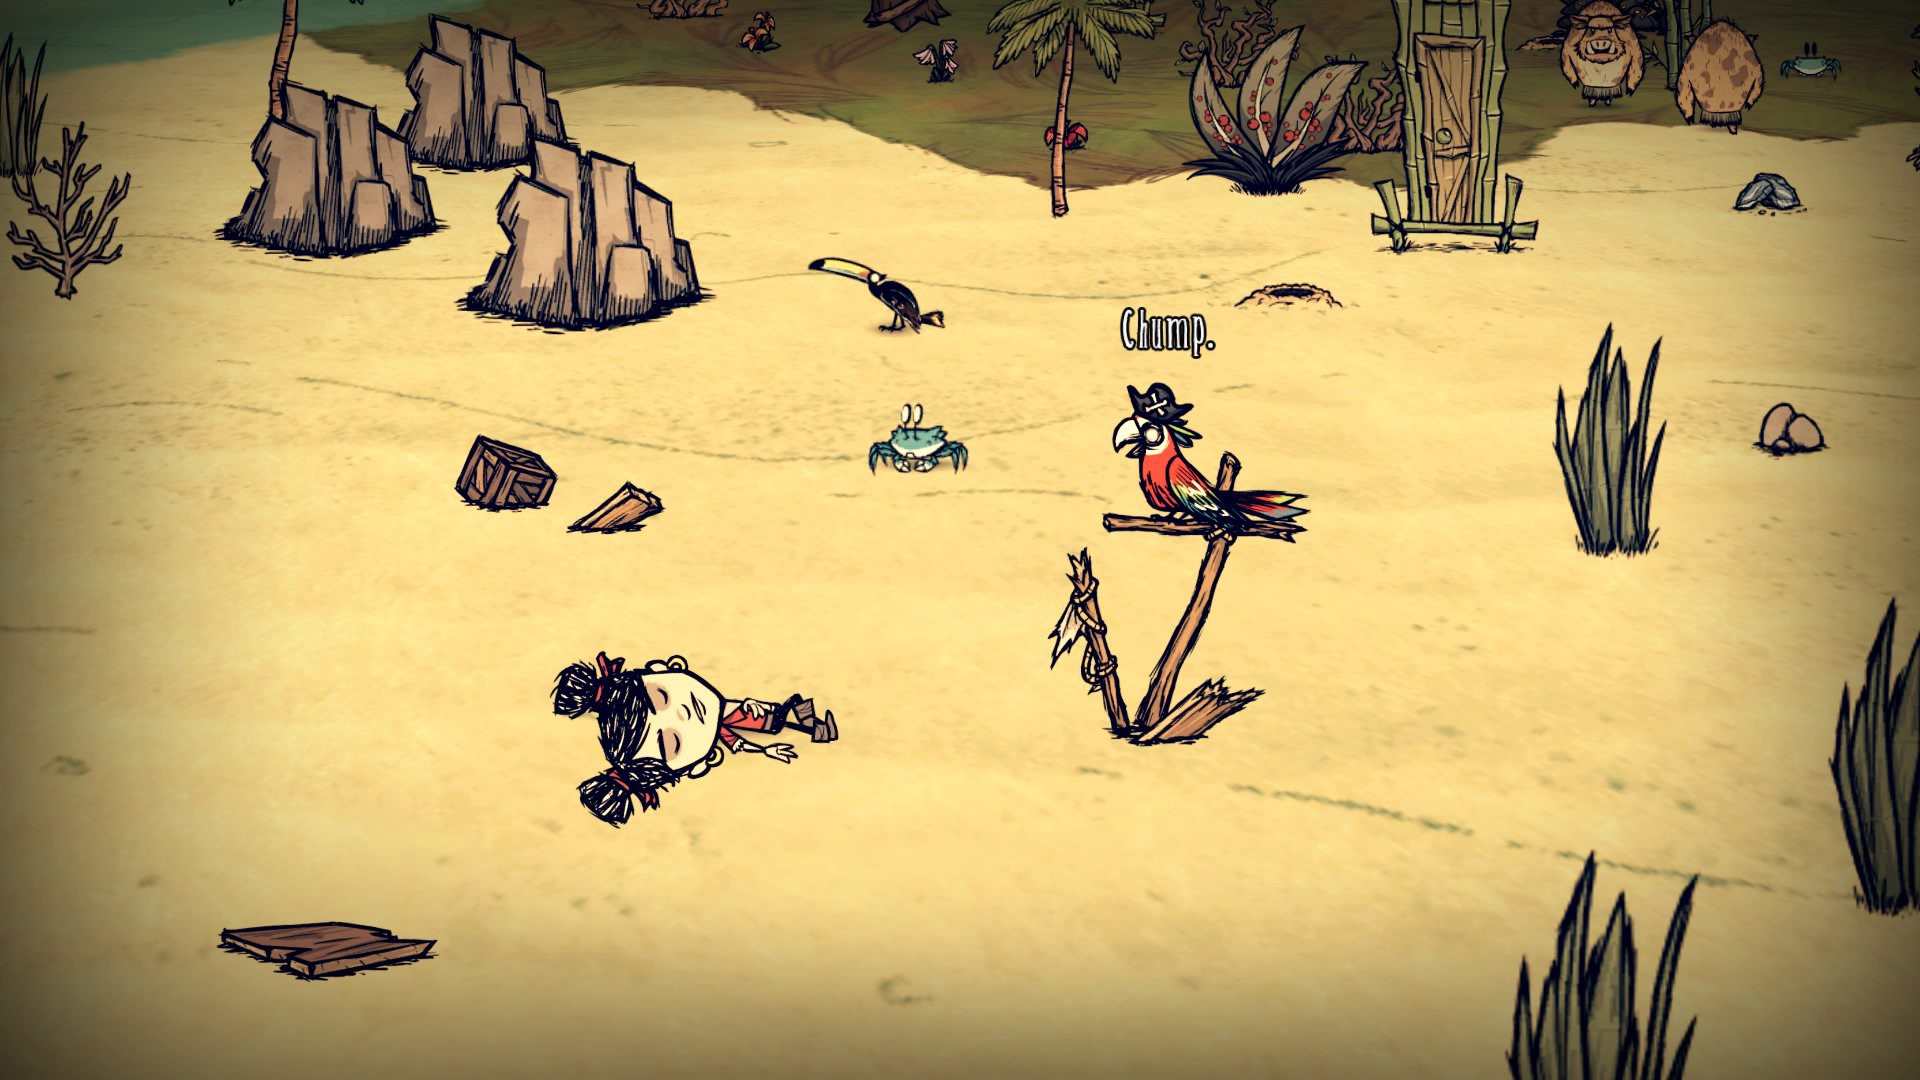 Don't Starve Shipwrecked DLC review: Get rekt. - TardNation ... on bloodborne map, dark souls map, dead rising 3 map, dragon age: inquisition map, h1z1 map, dying light map, five nights at freddy's map, strider map, lords of the fallen map, damnation map, assassin's creed unity map, crackdown 2 map, icewind dale map, destiny map, axiom verge map, the crew map, terraria map, project zomboid map, the elder scrolls online map, everybody's gone to the rapture map,